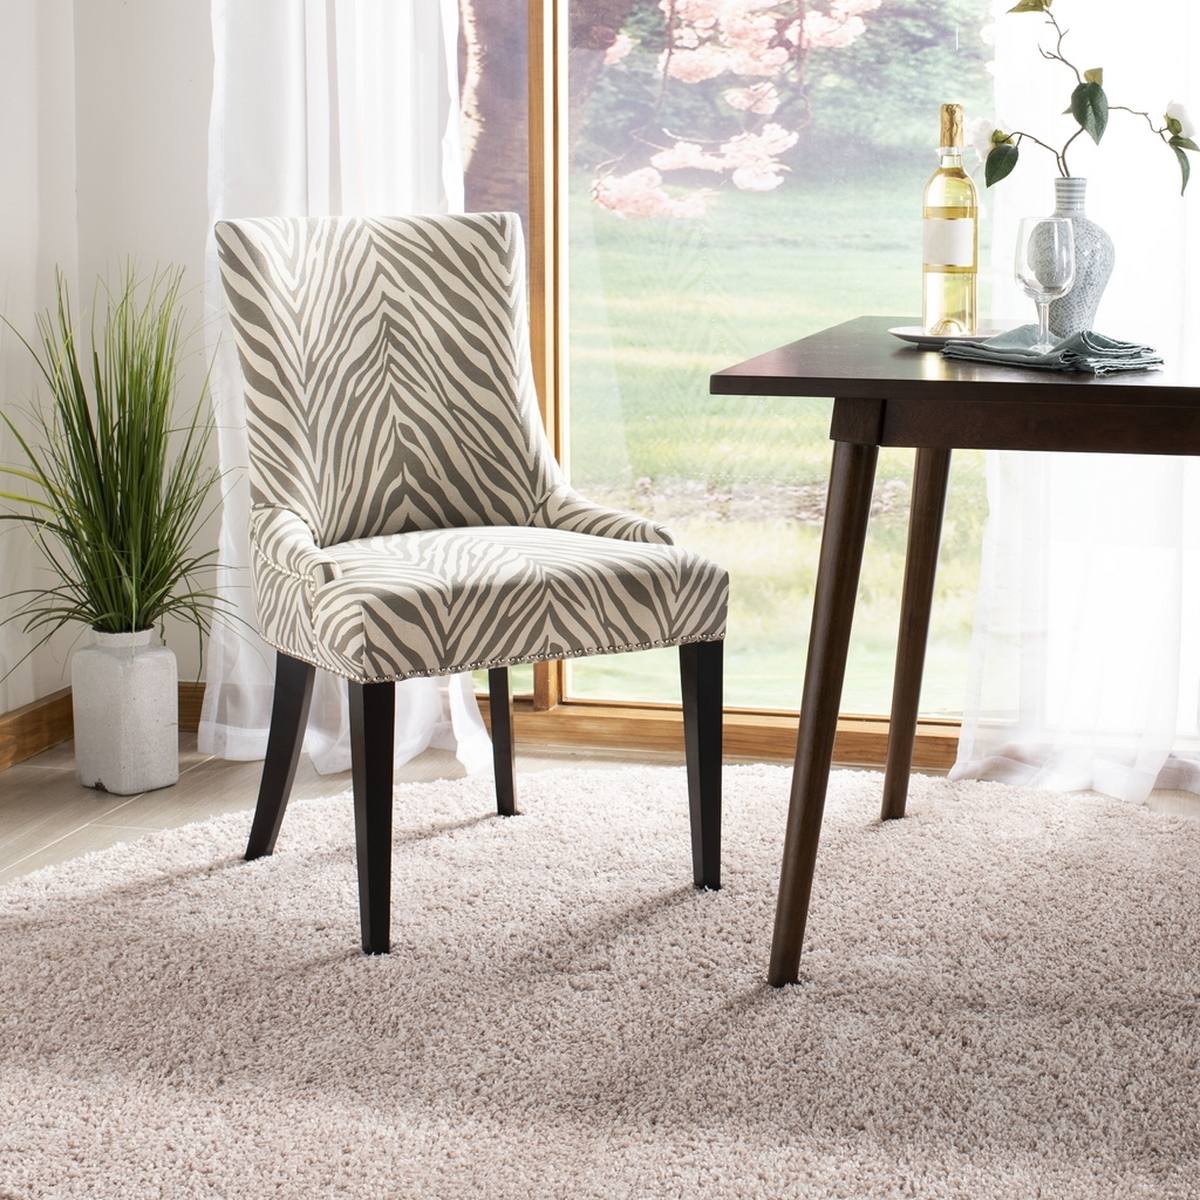 becca 19h grey white zebra dining chair silver nail heads mcr4502n dining chairs